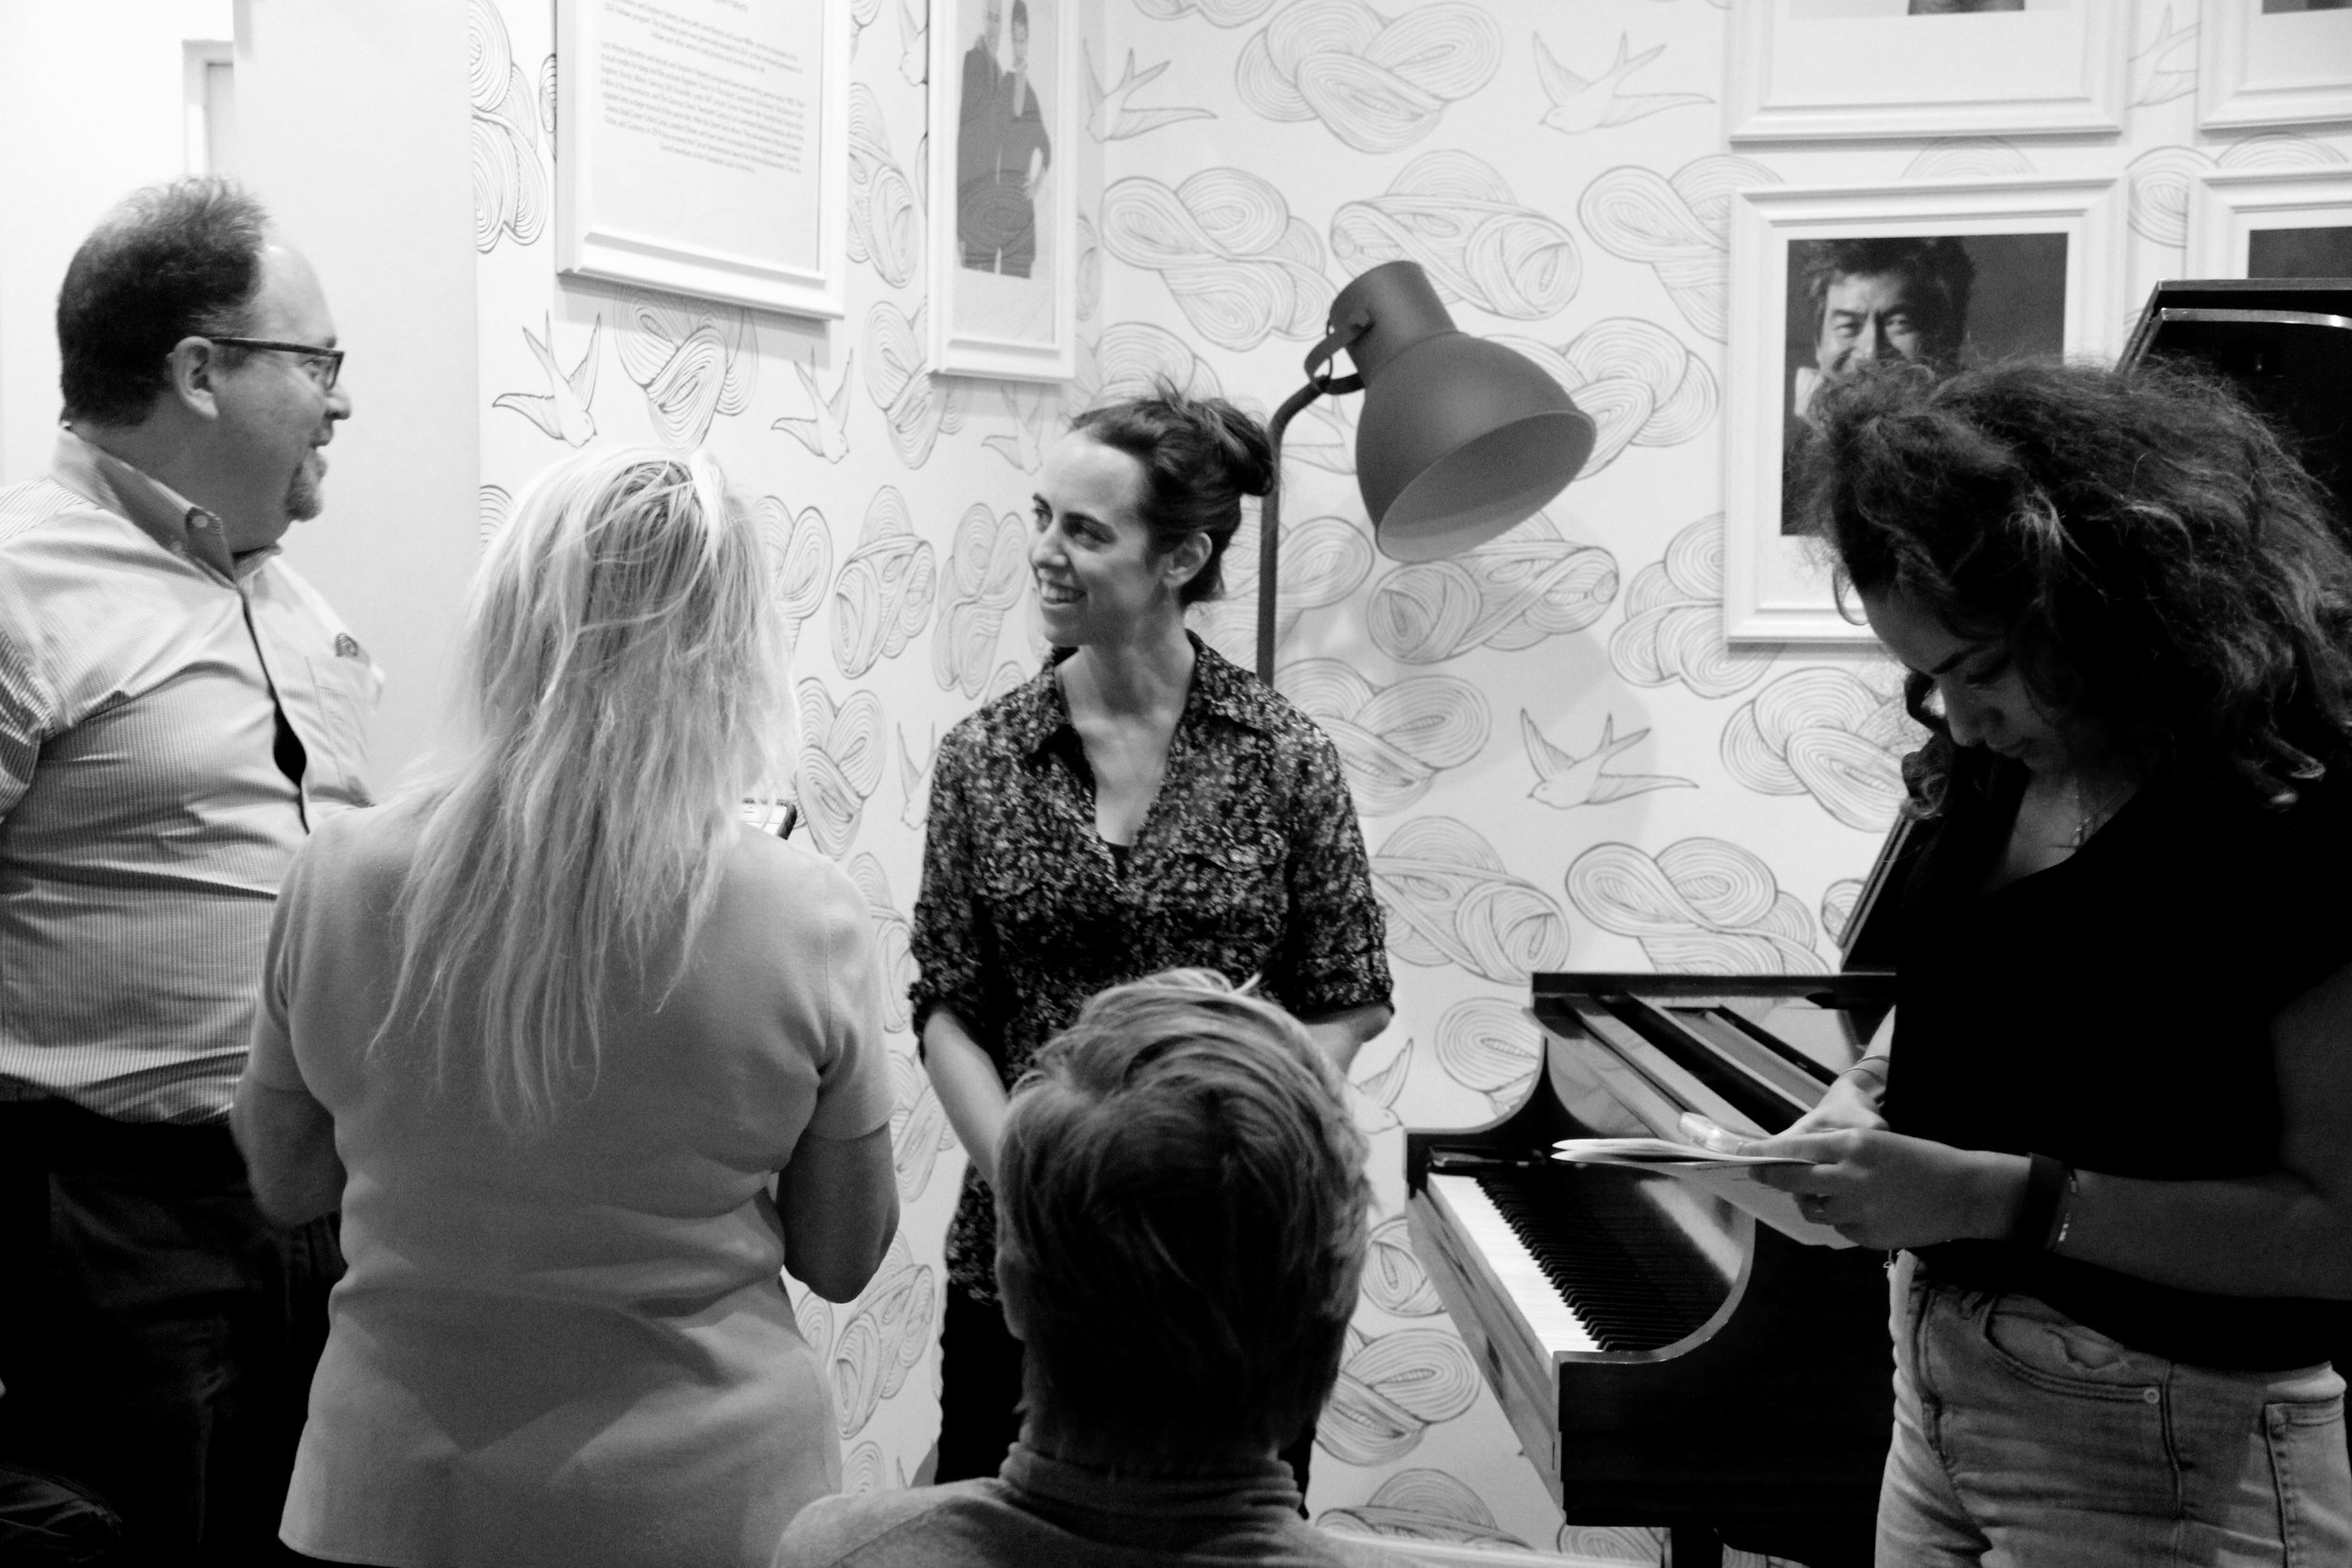 Jazz pianist Mara Rosenbloom talks with audience members after her performance.  Photo by Jagruti Deshmukh.